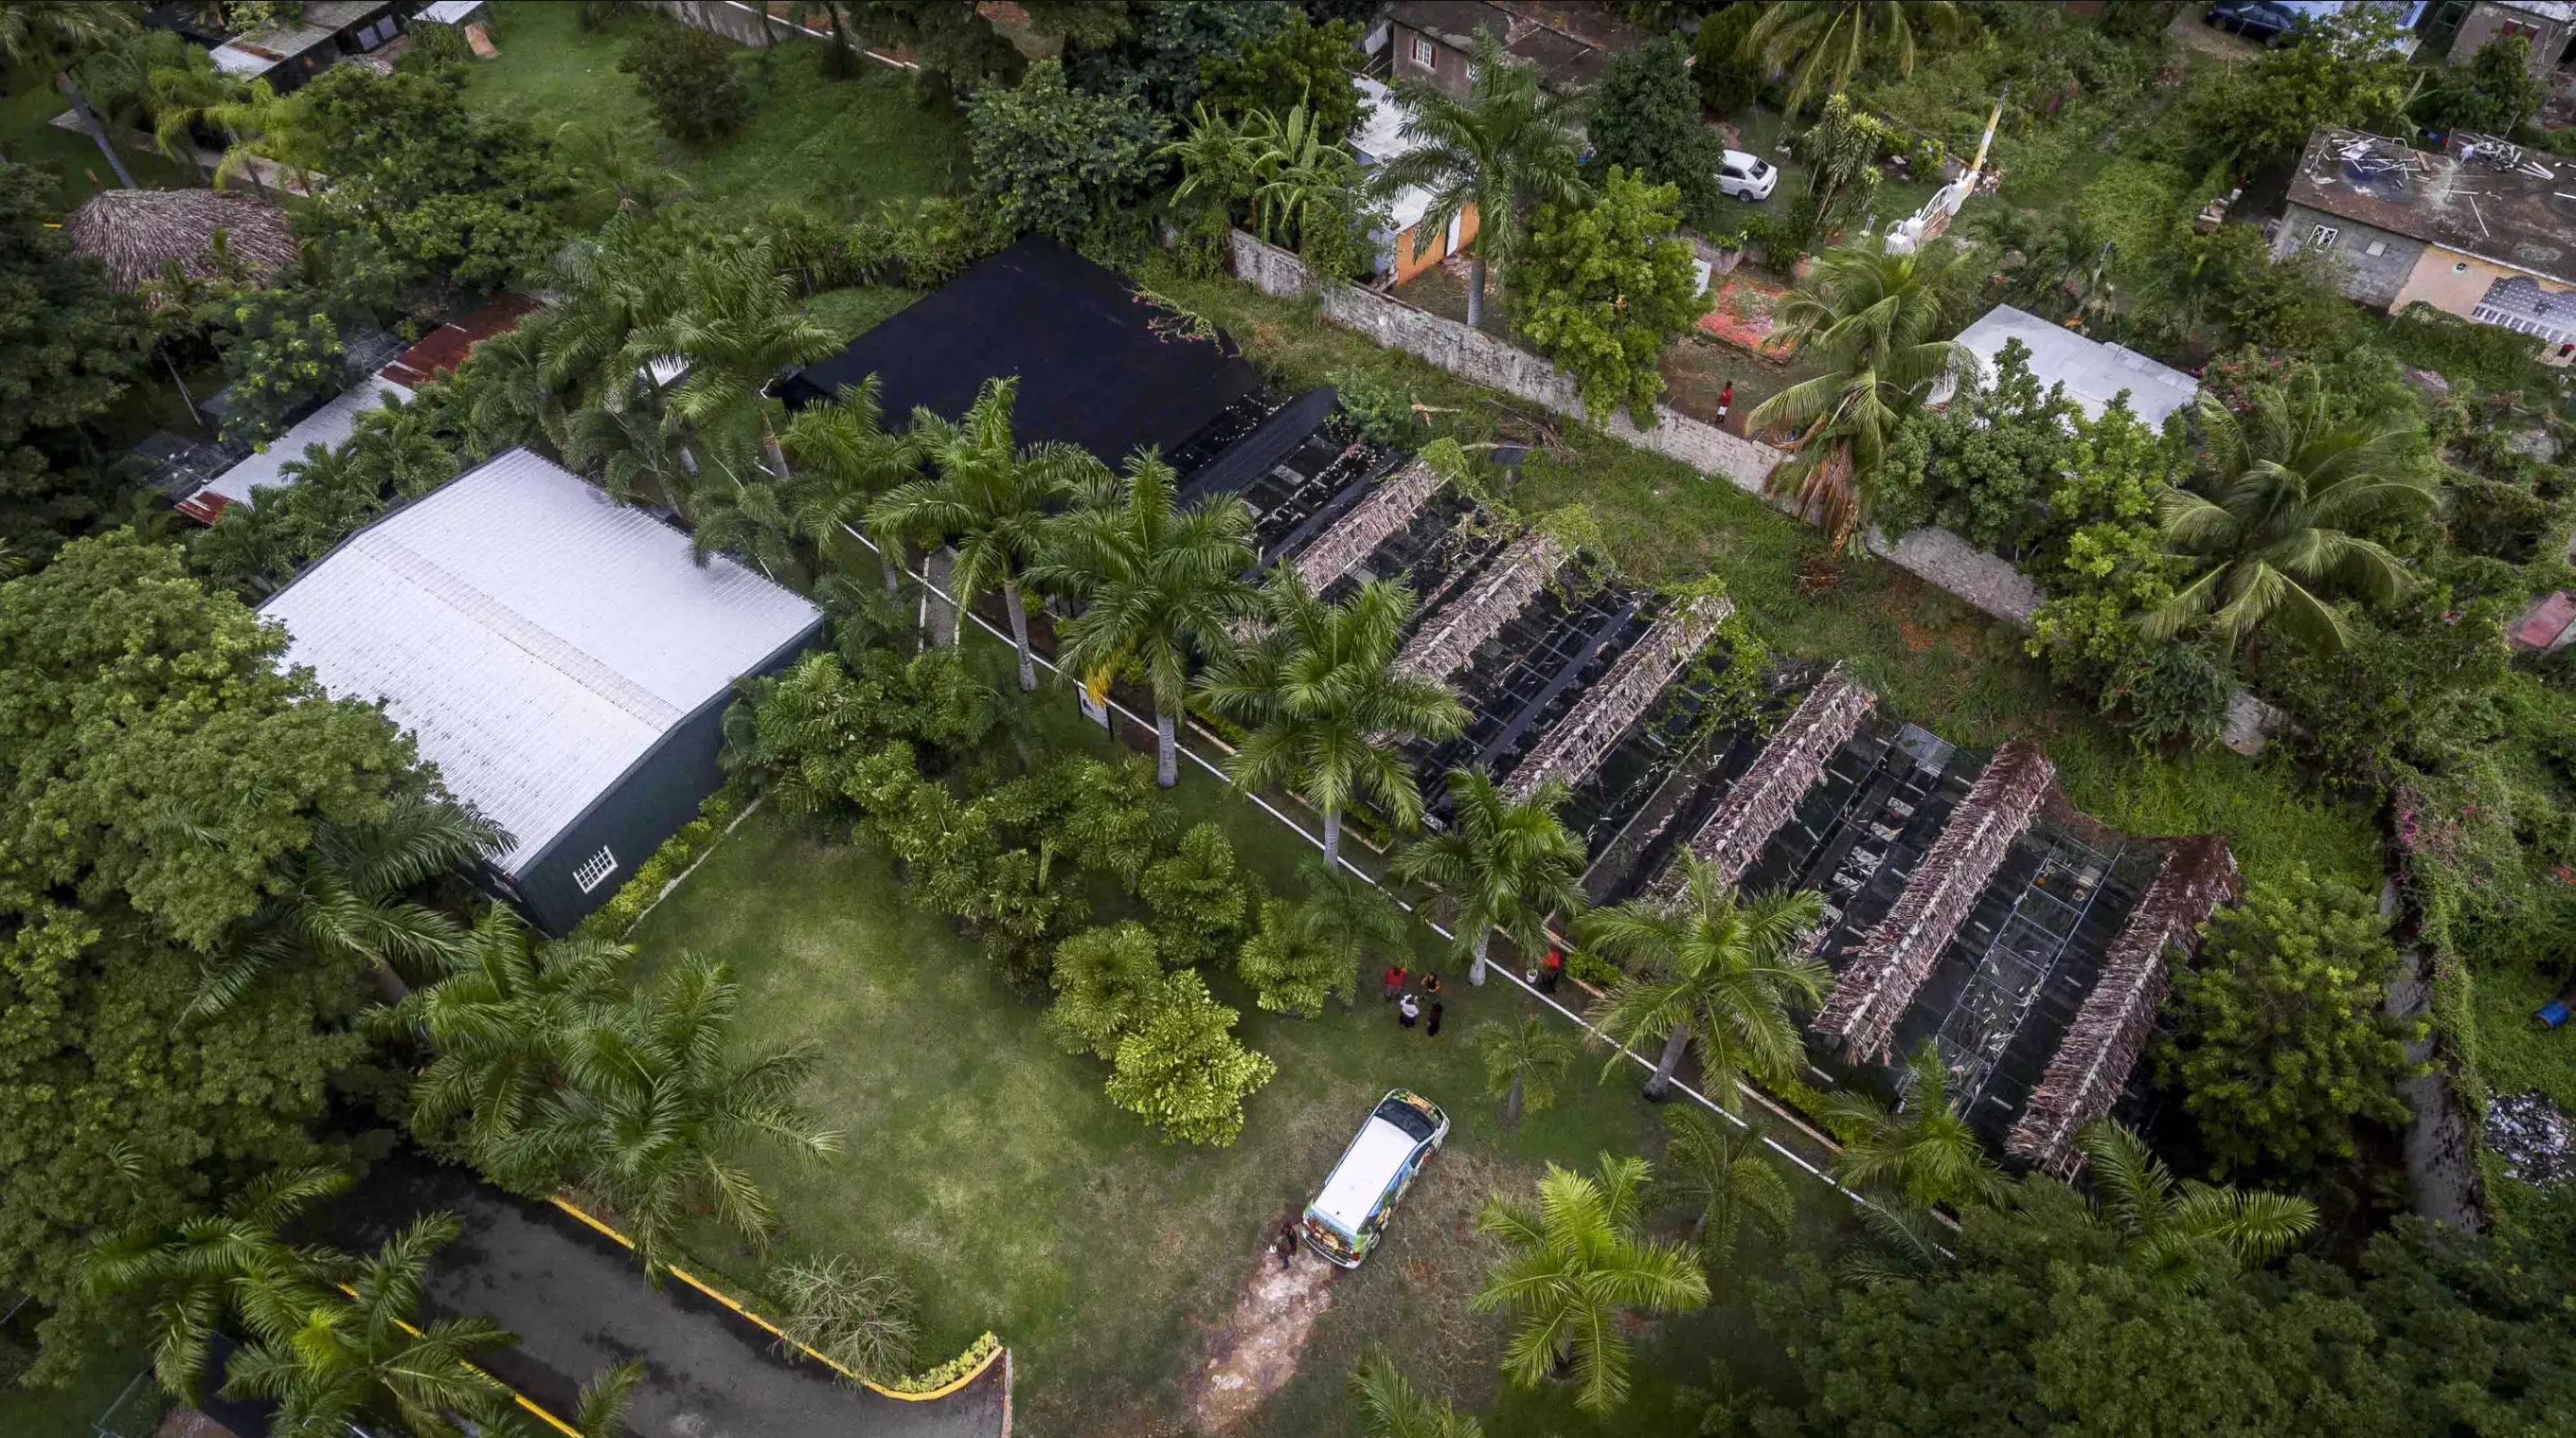 Drone view of Iguana enclousures on the roight and the diagnostic centre provided by SGP on the left